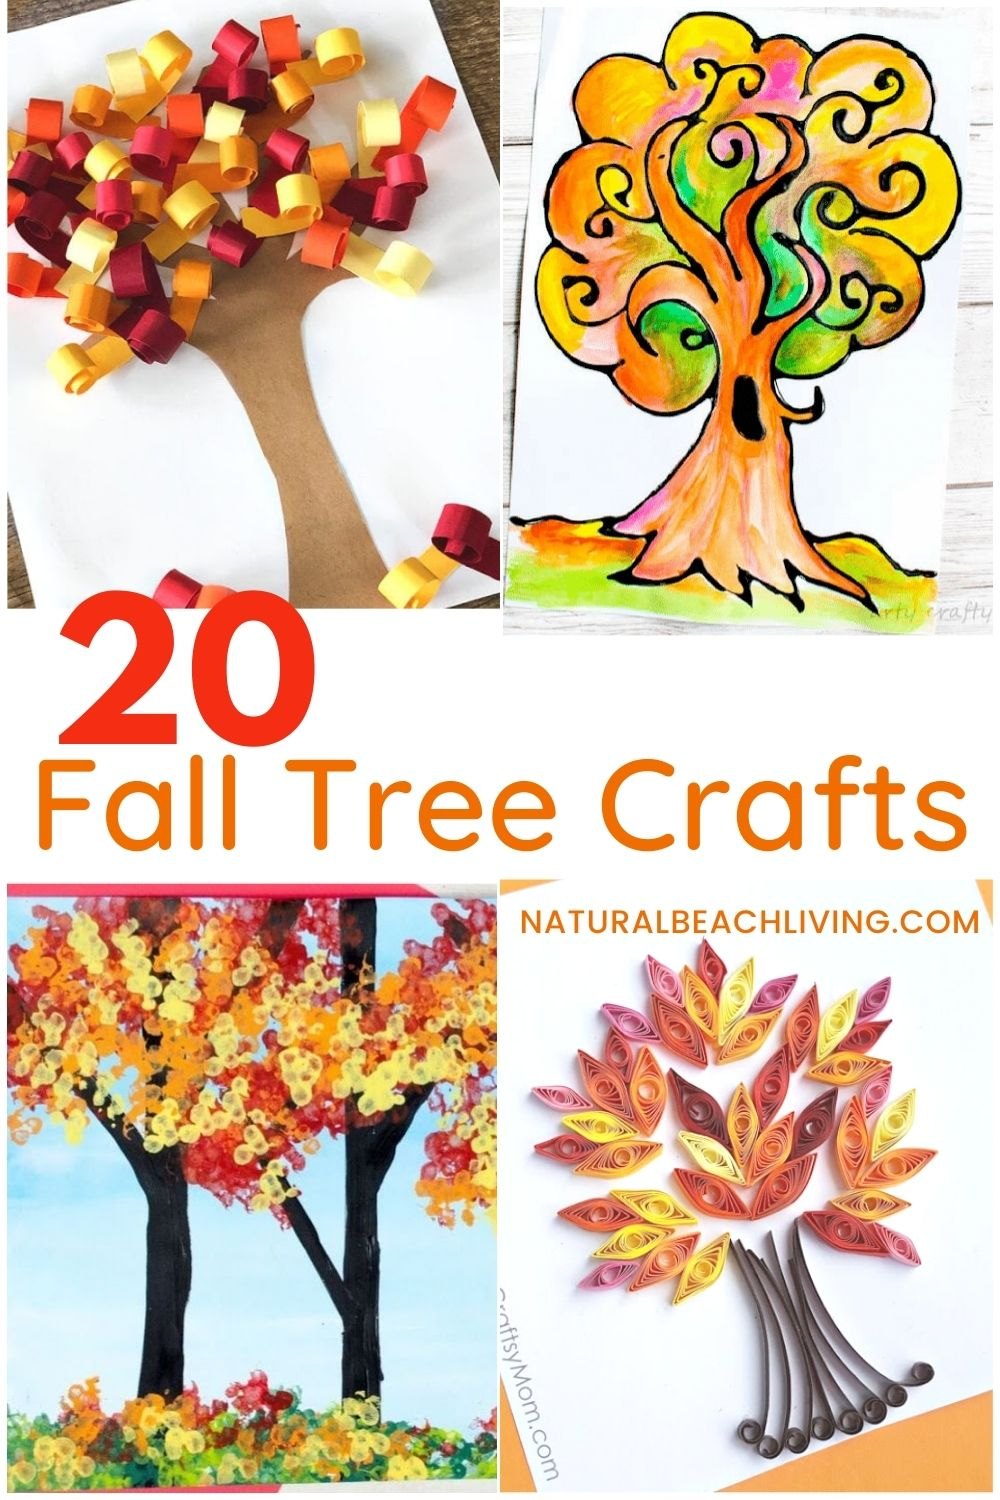 20 gorgeous fall tree craft ideas for kids. From a tree made with painted puzzle pieces to 3D autumn trees that pop off the page, these fall tree crafts are sure to delight kids of all ages. Preschool arts and crafts ideas for the entire fall season